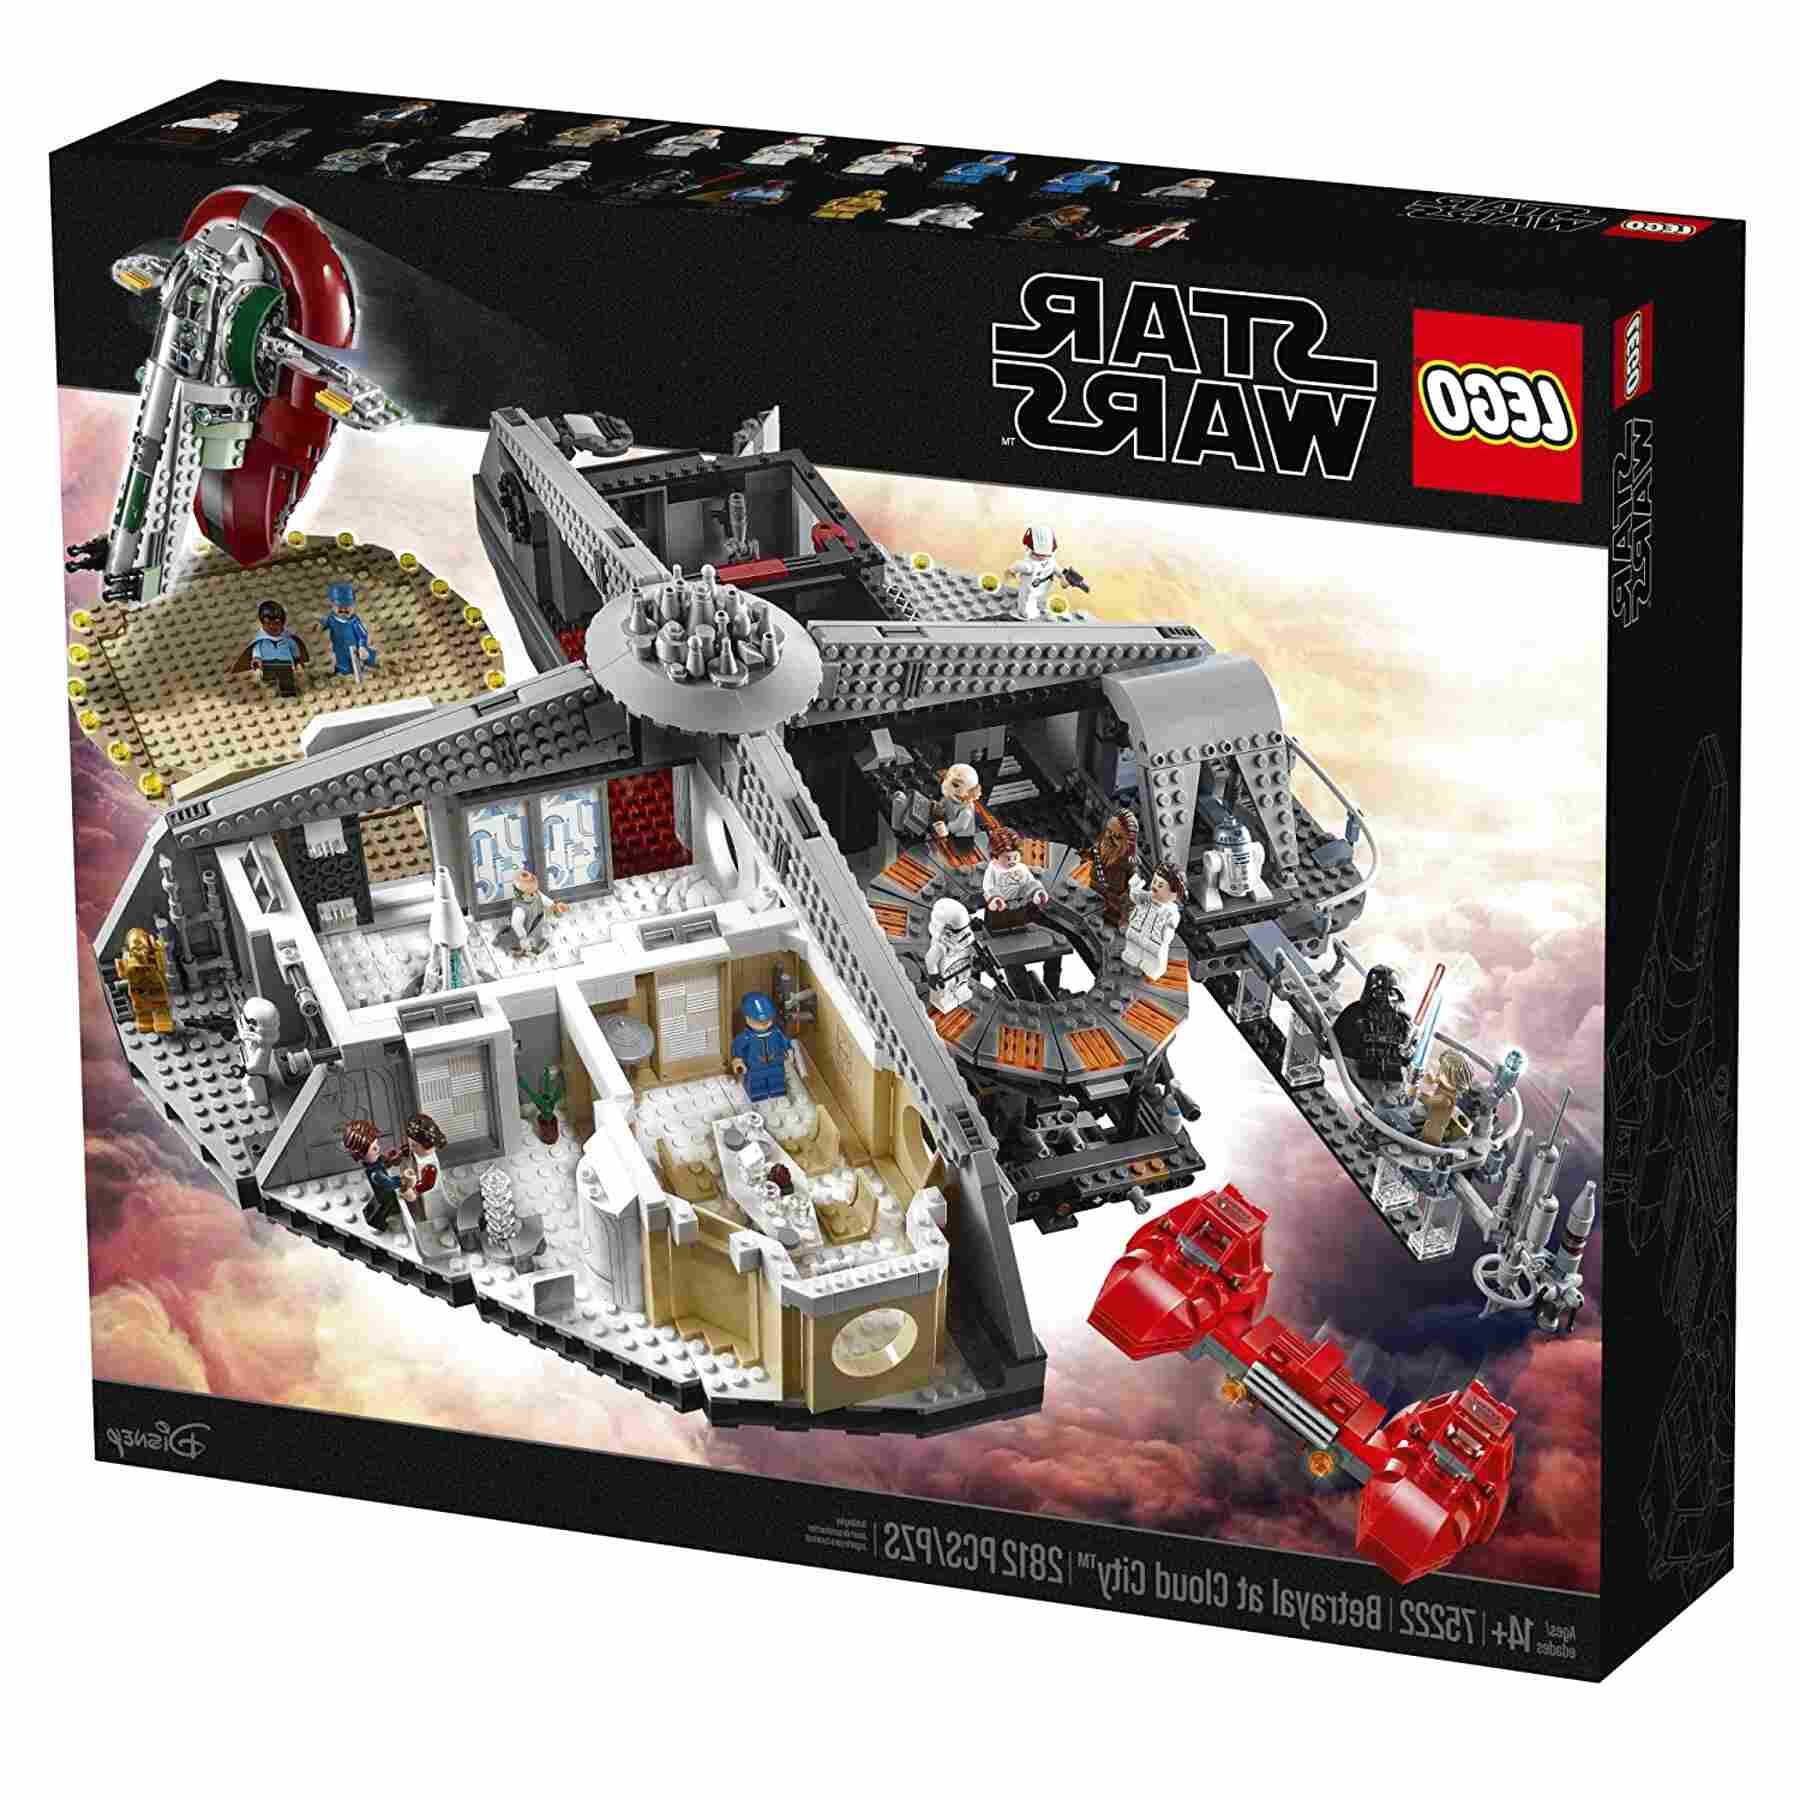 retired lego sets for sale